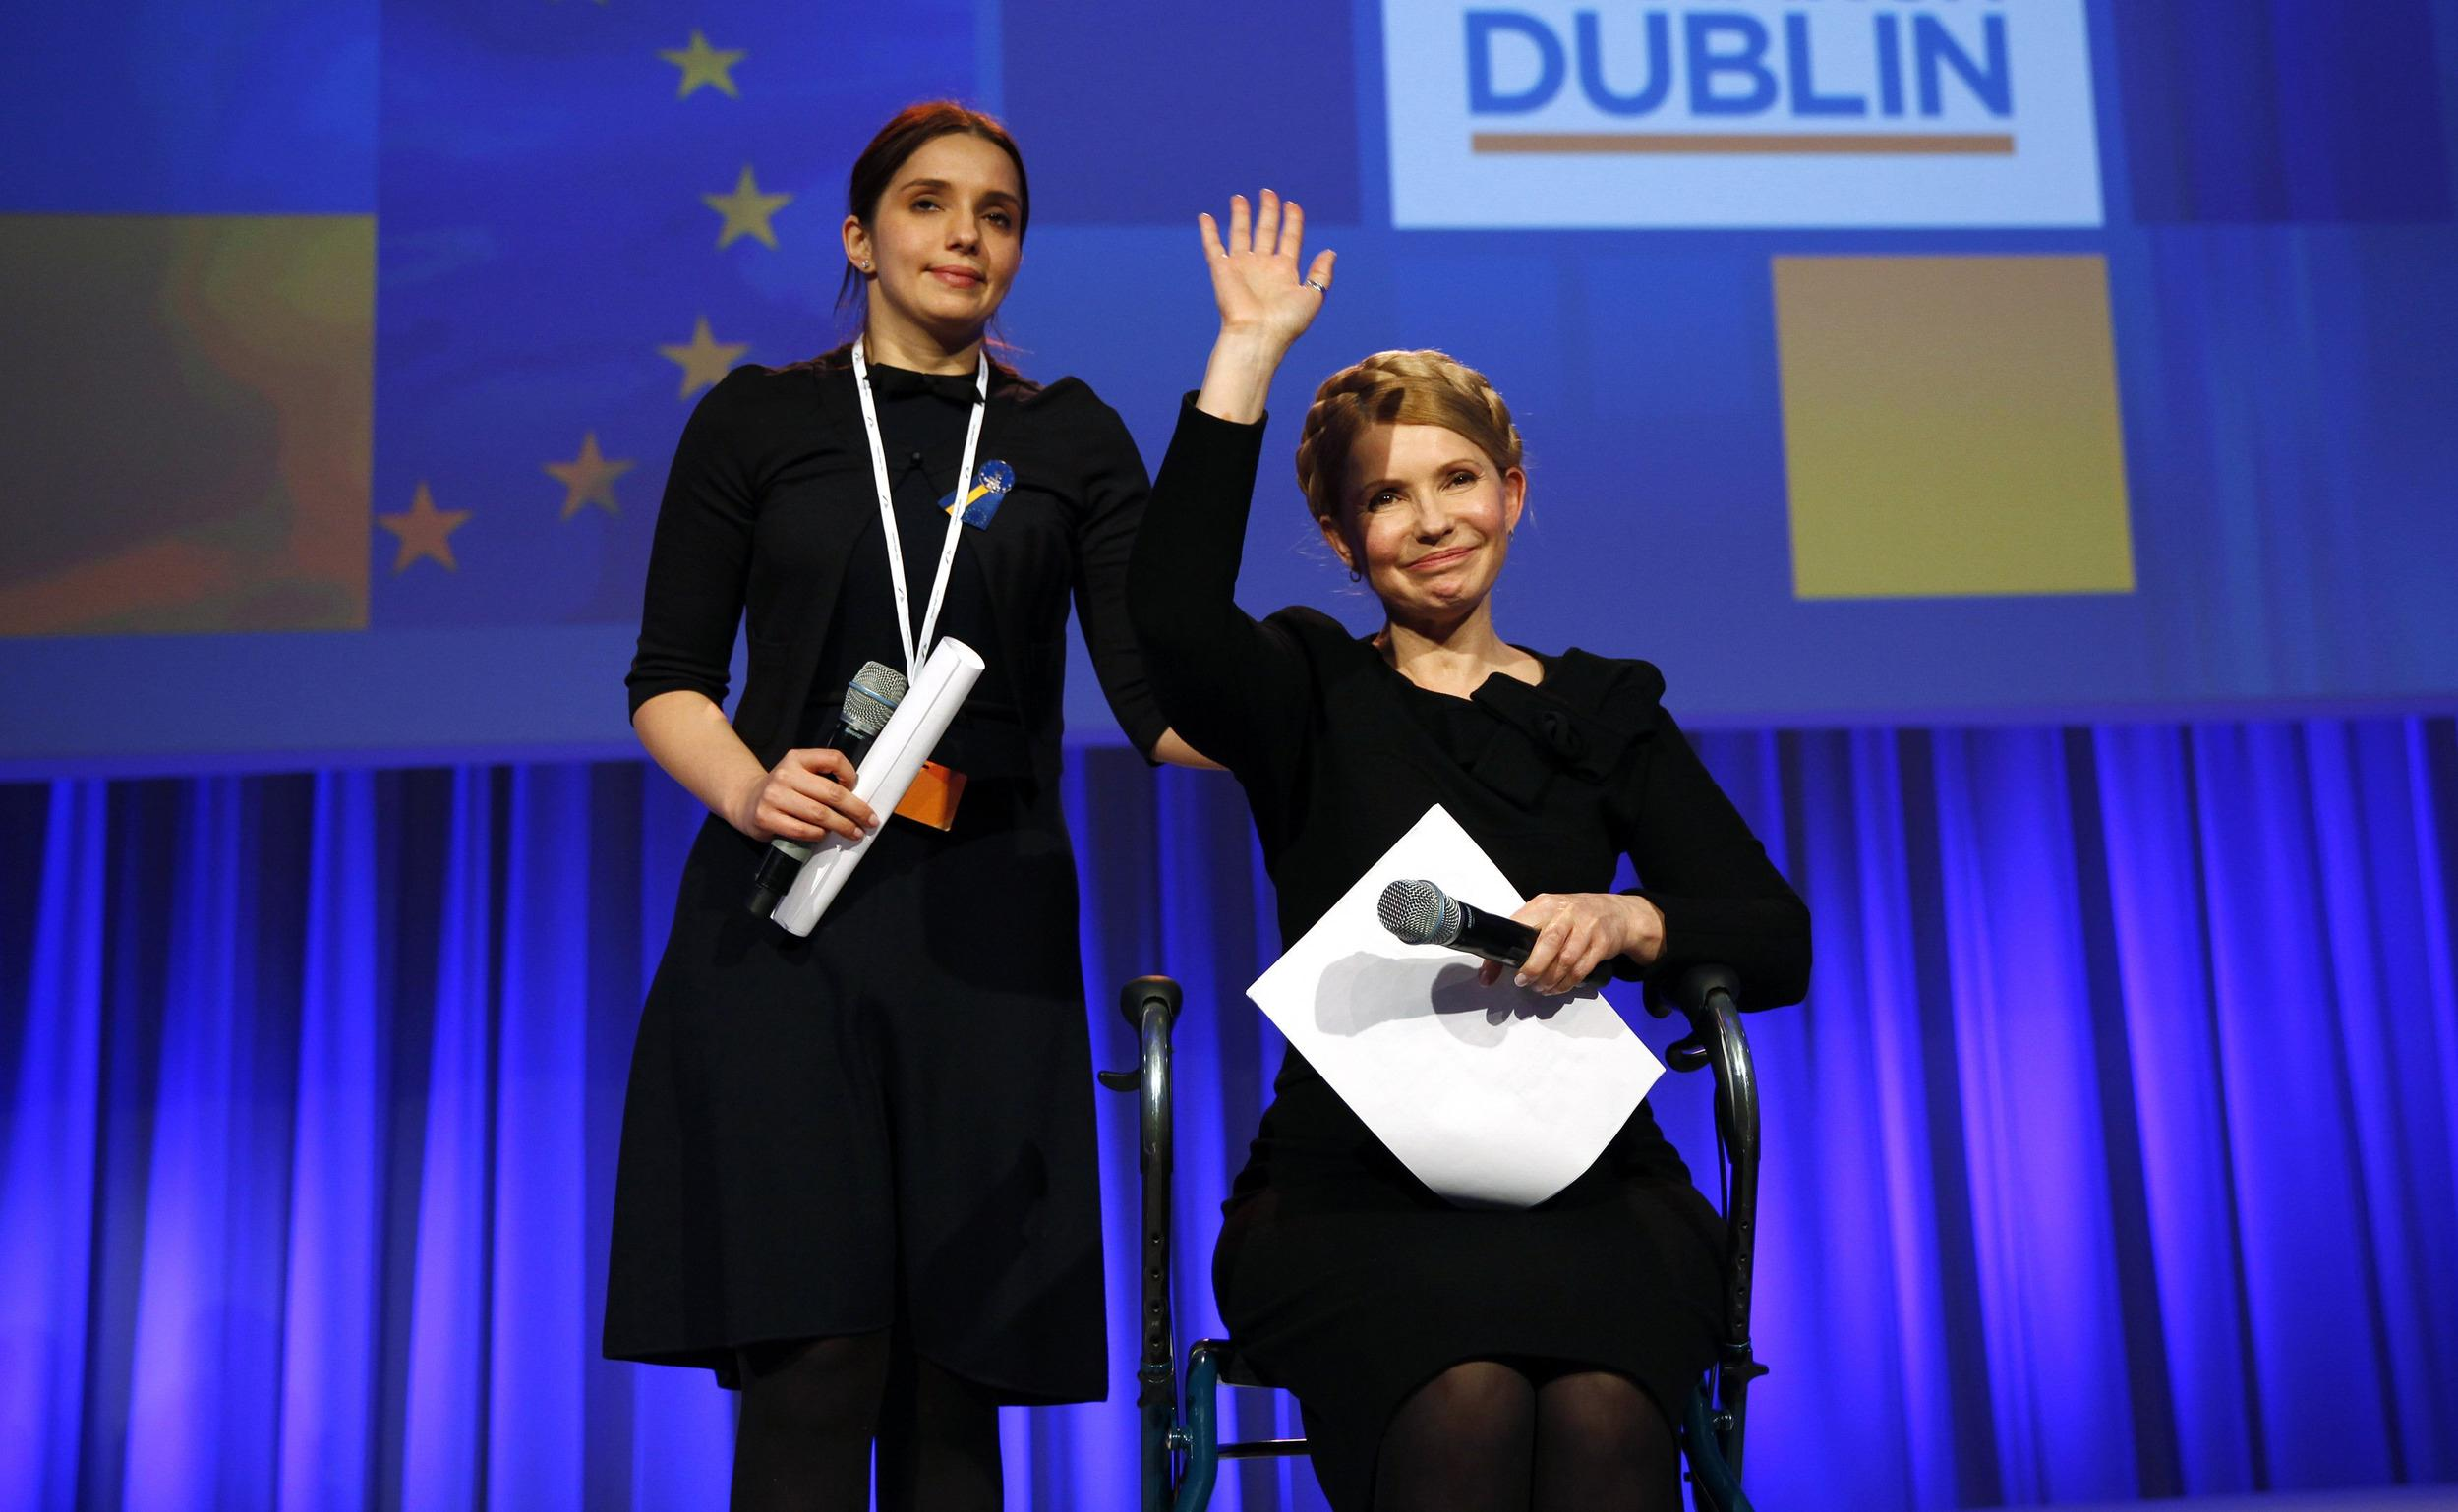 Image: Ukrainian opposition politician Tymoshenko acknowledges applause in Dublin